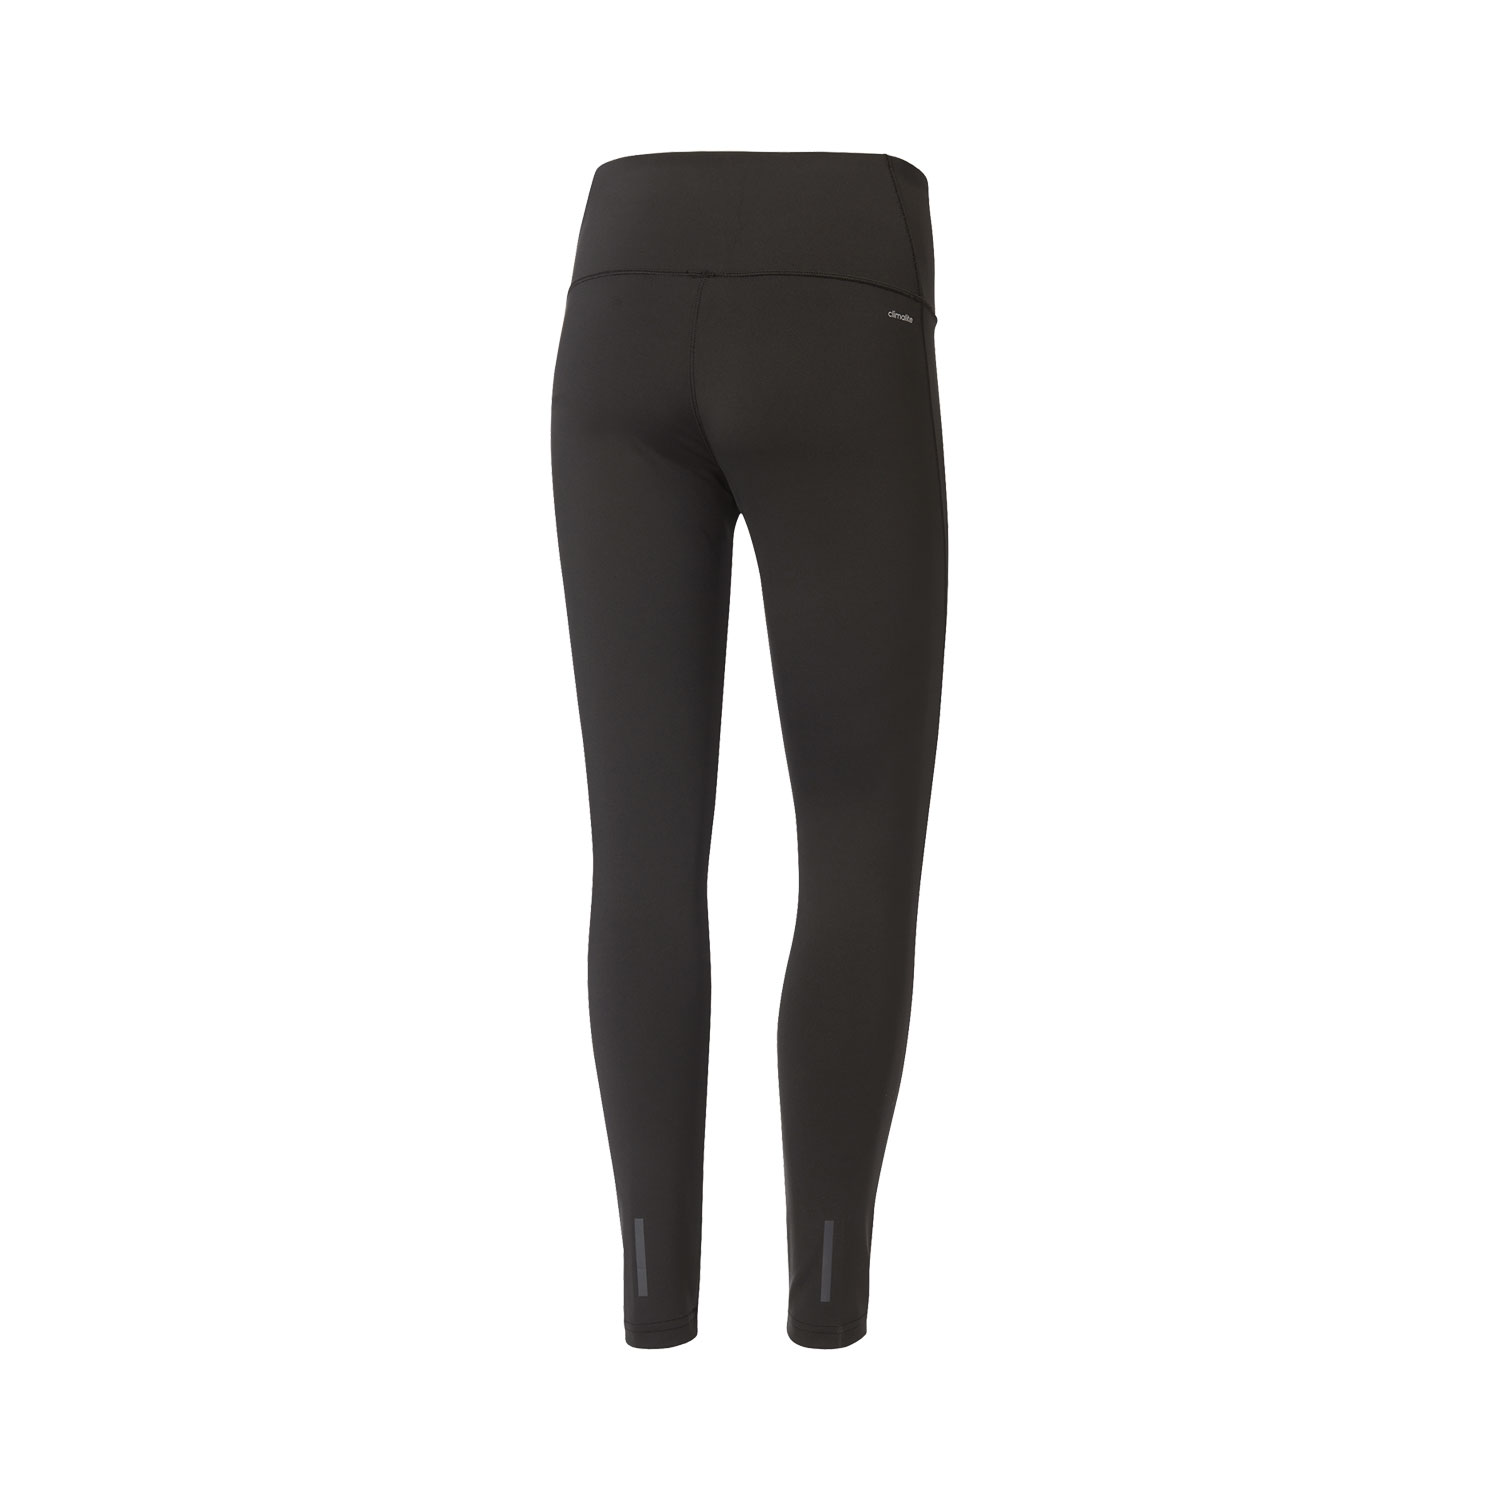 Adidas D2M Long Tight Damen Fitness Leggins – Bild 2